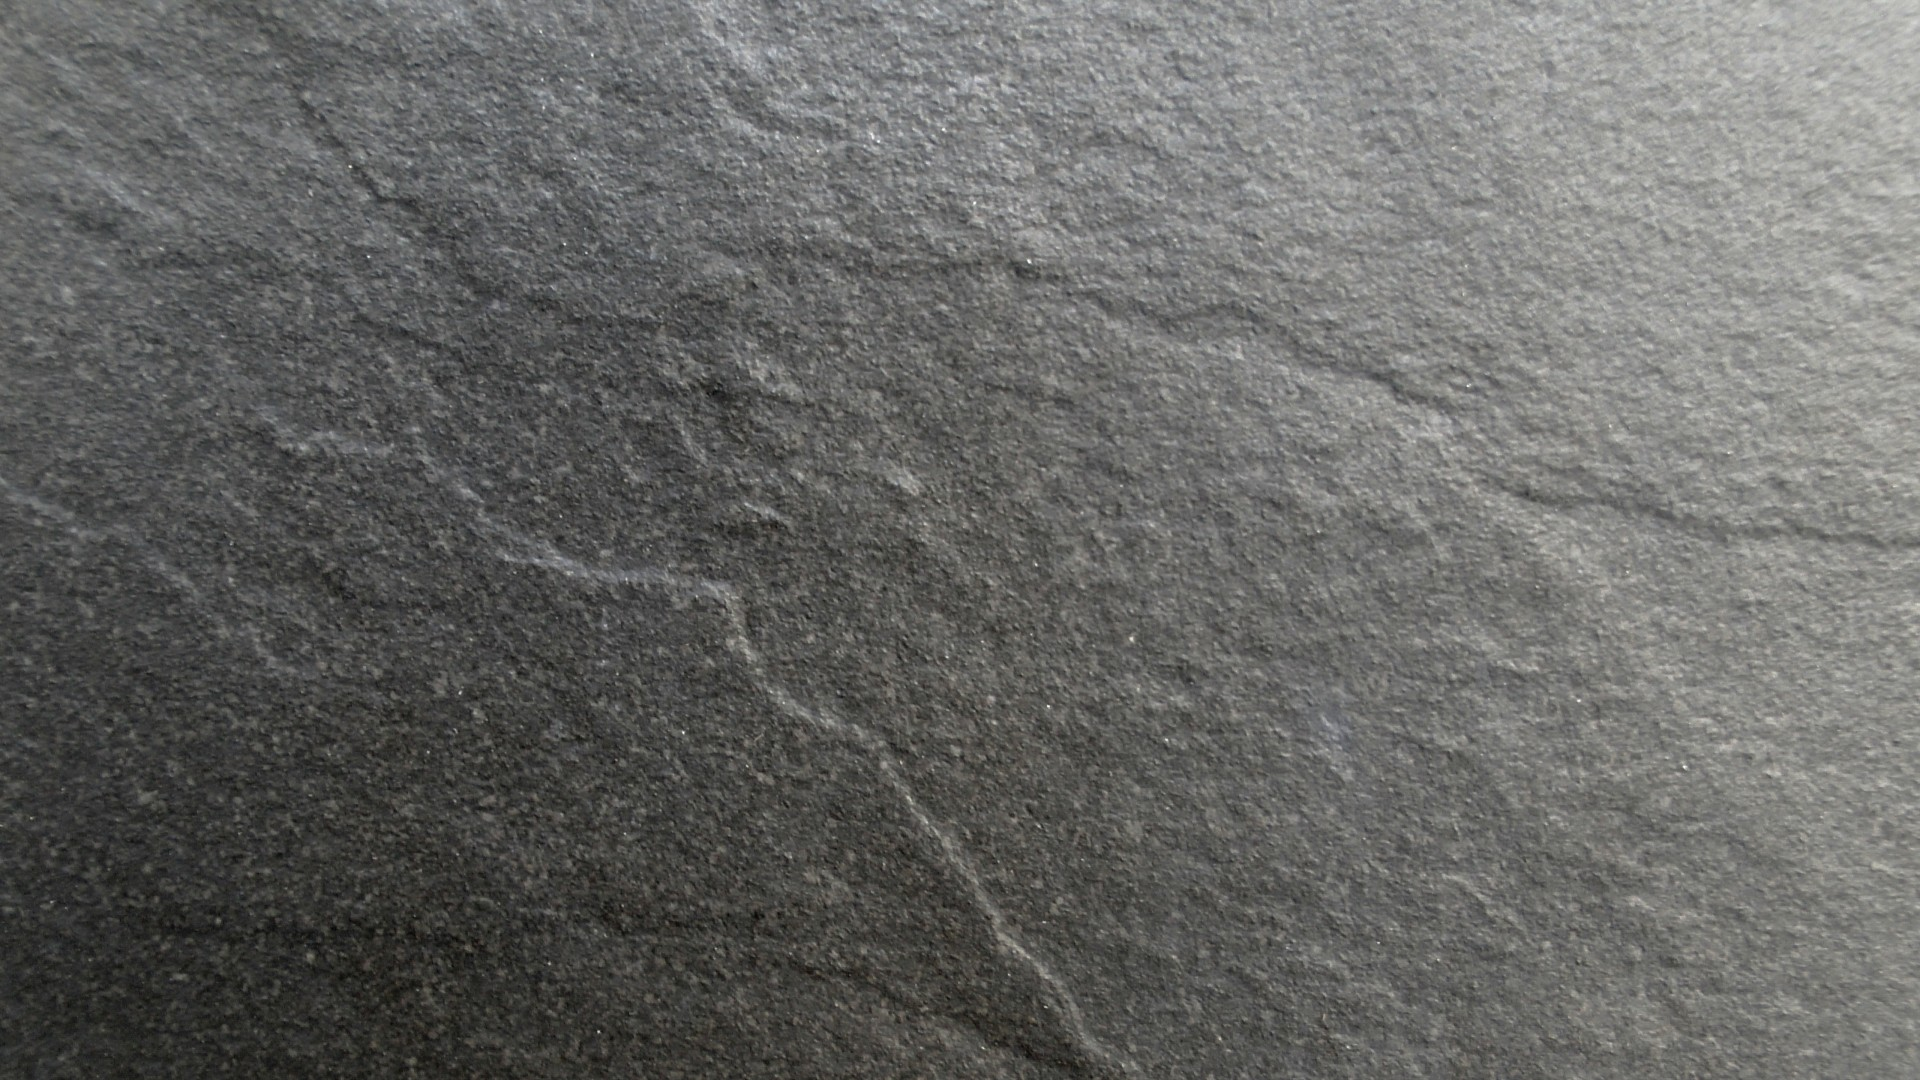 Black Textured Wallpaper Gray Slate Background Free Stock Photo Public Domain